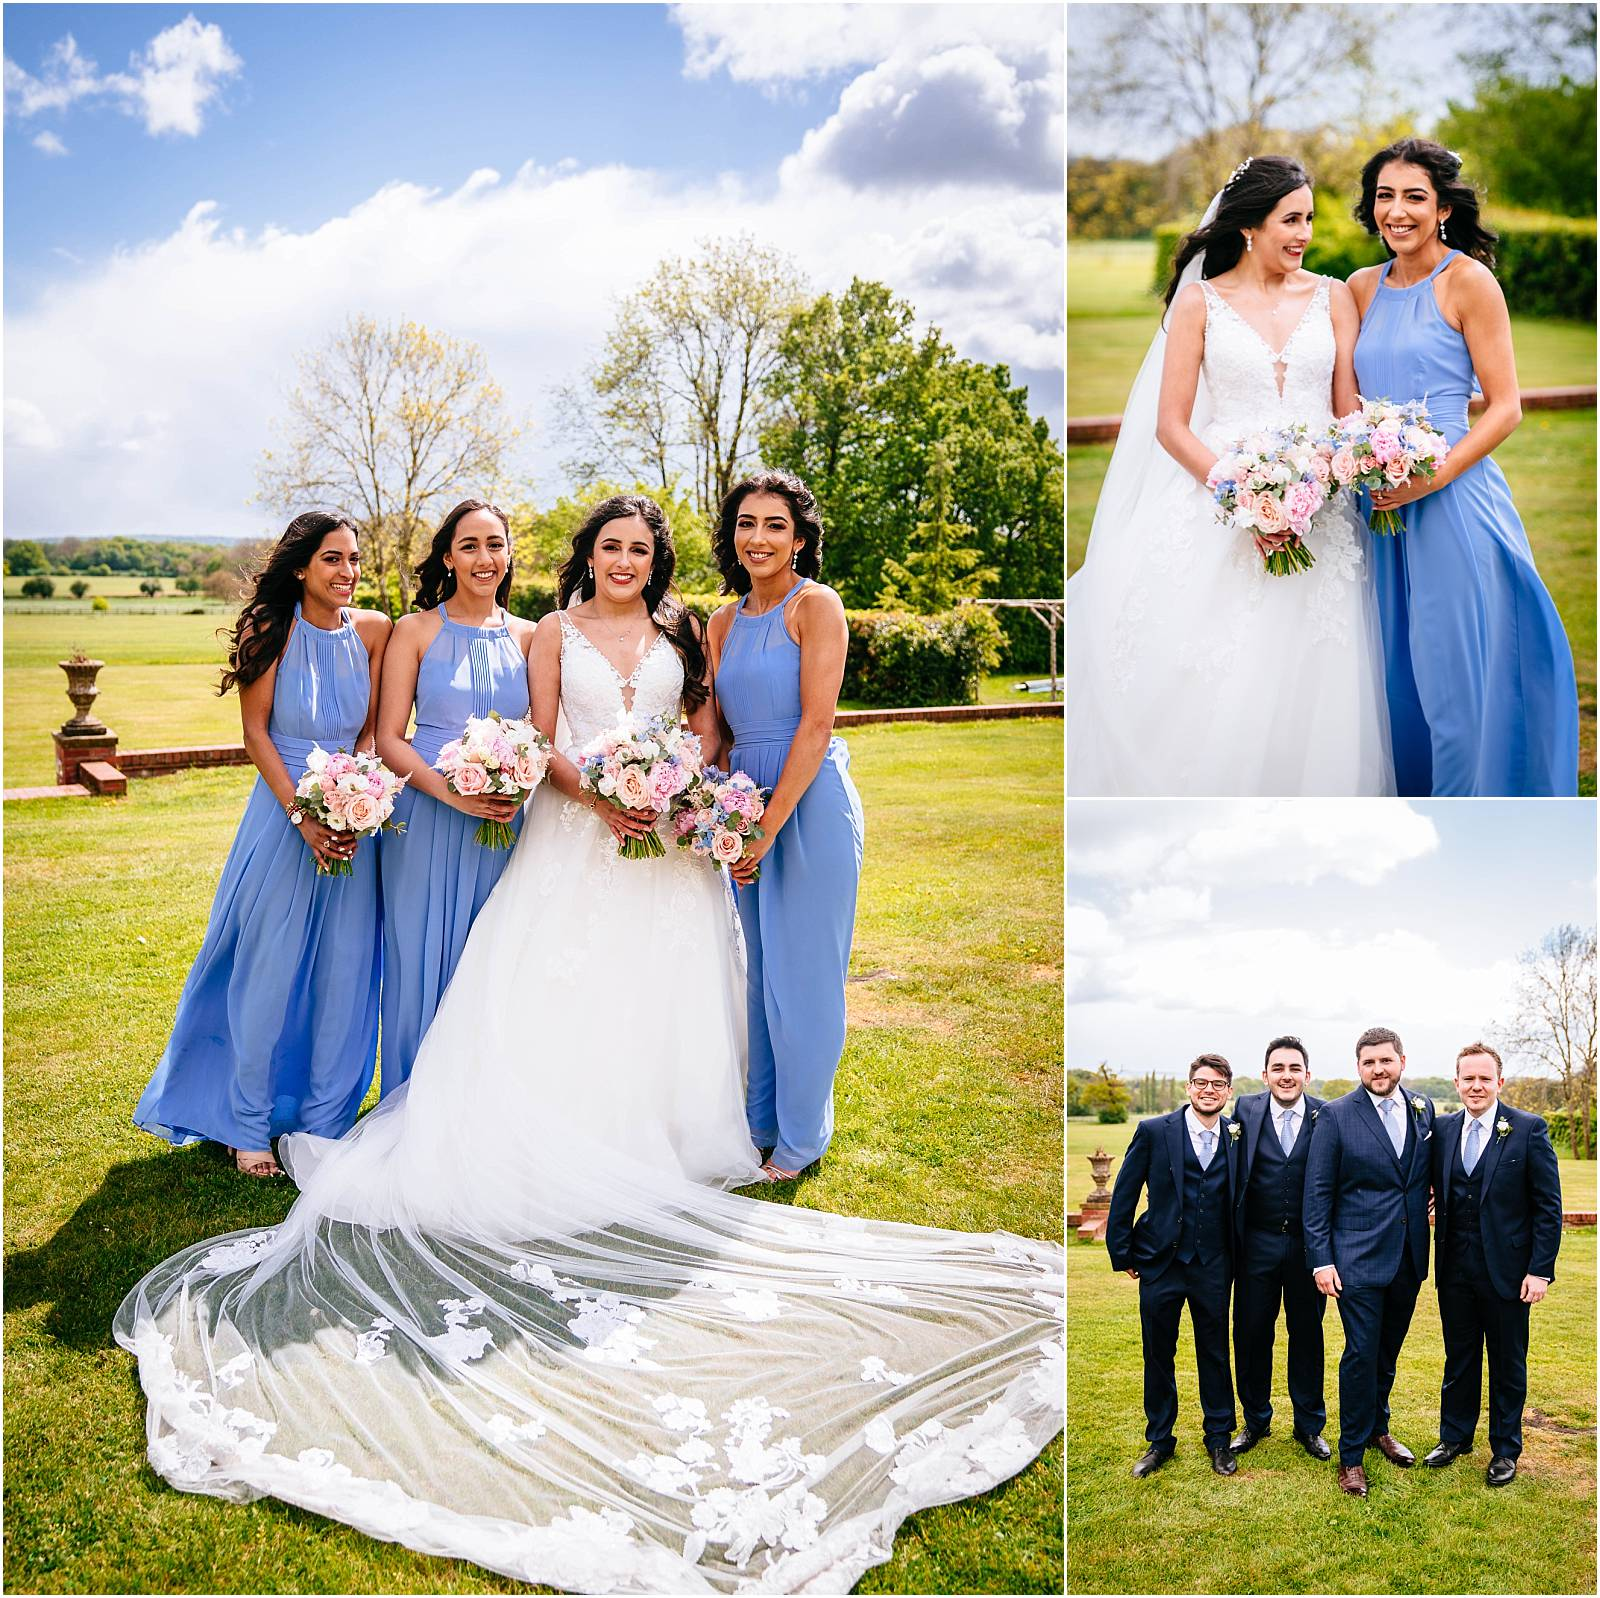 pronovias wedding dress and veil and cornflower blue bridesmaid dresses